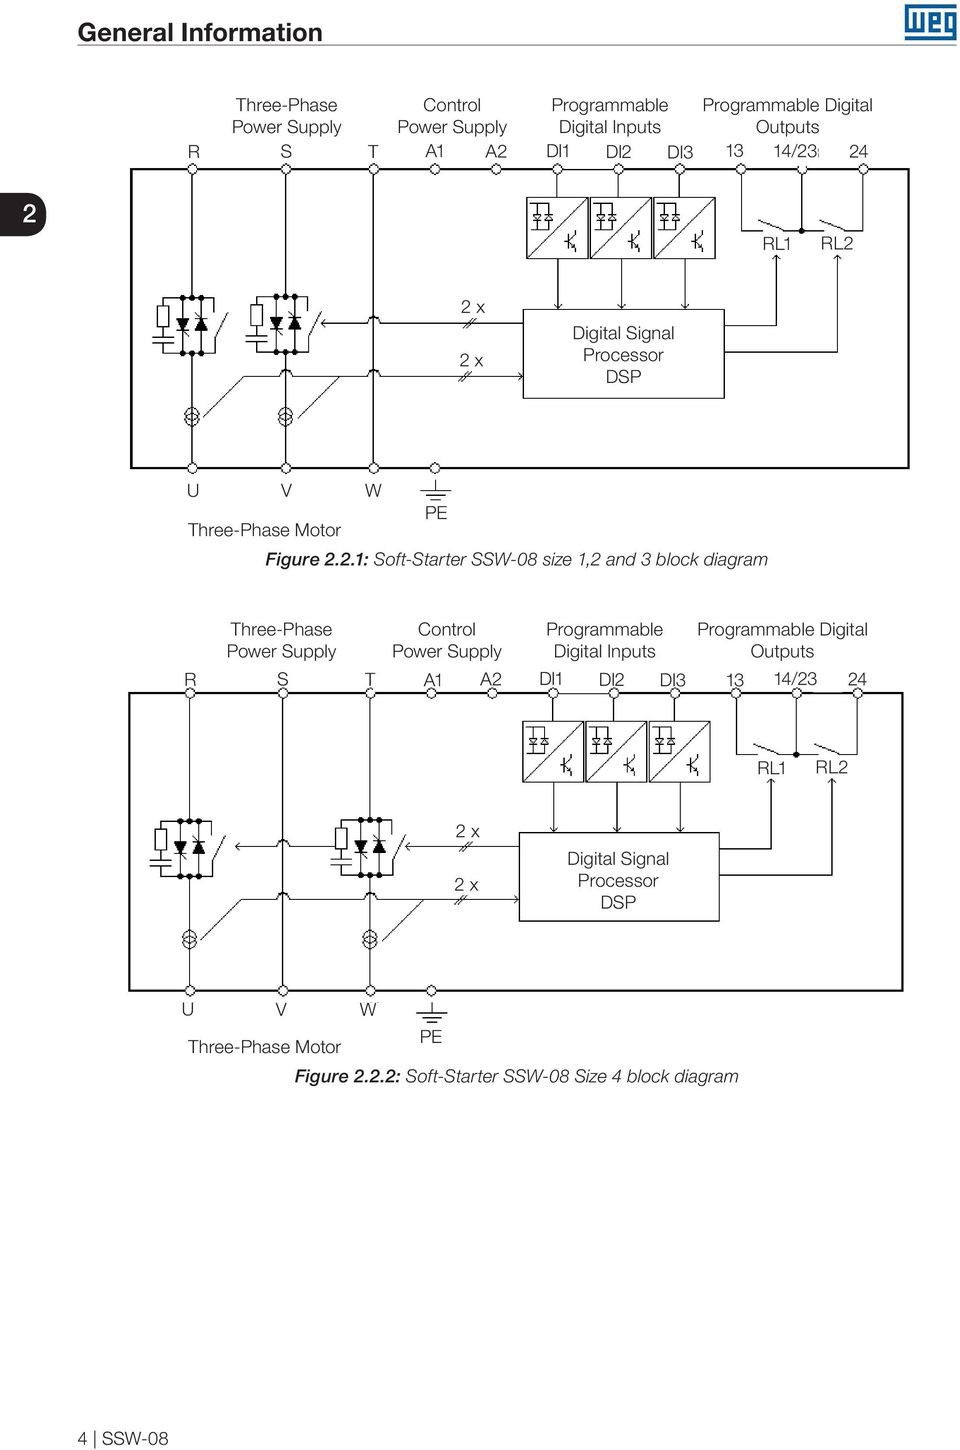 24 2 RL1 RL2 2 x 2 x Digital Signal Processor DSP U V W PE Three-Phase Motor Figure 2.2.1: Soft-Starter SSW-08 size 1,2 and 3 block diagram